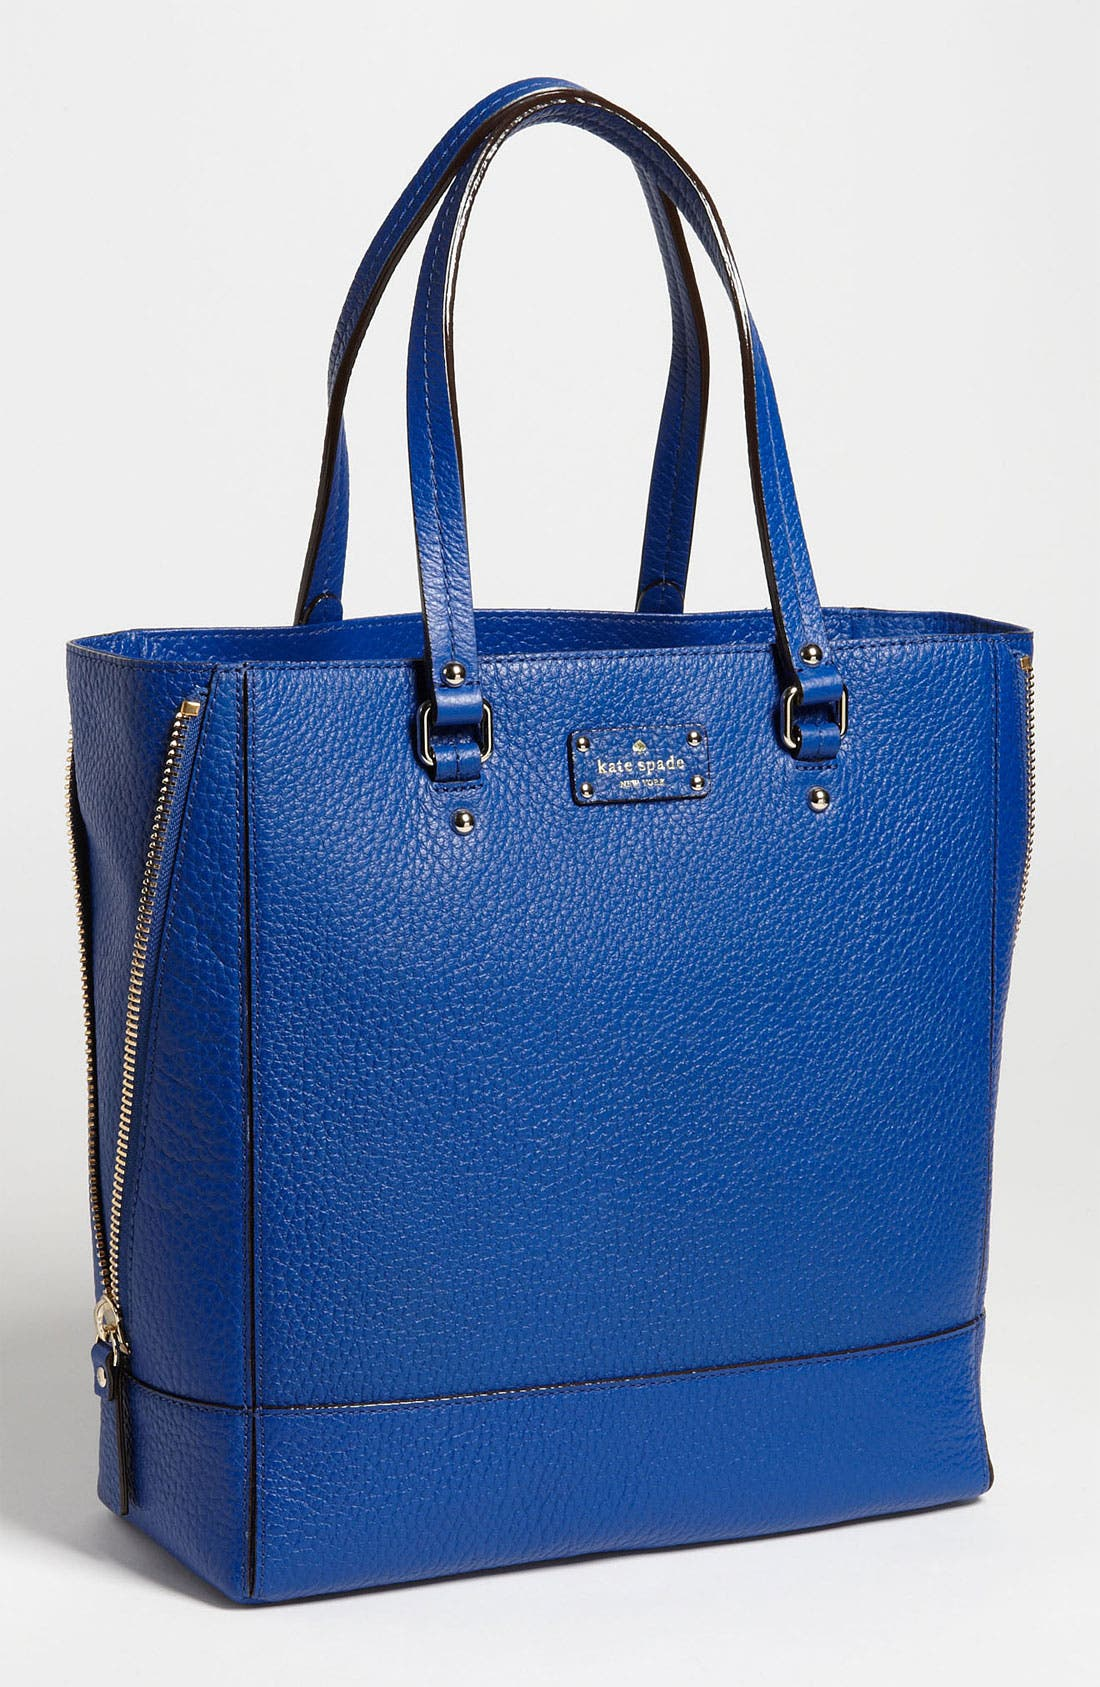 Main Image - kate spade new york 'grove court - thea' leather tote